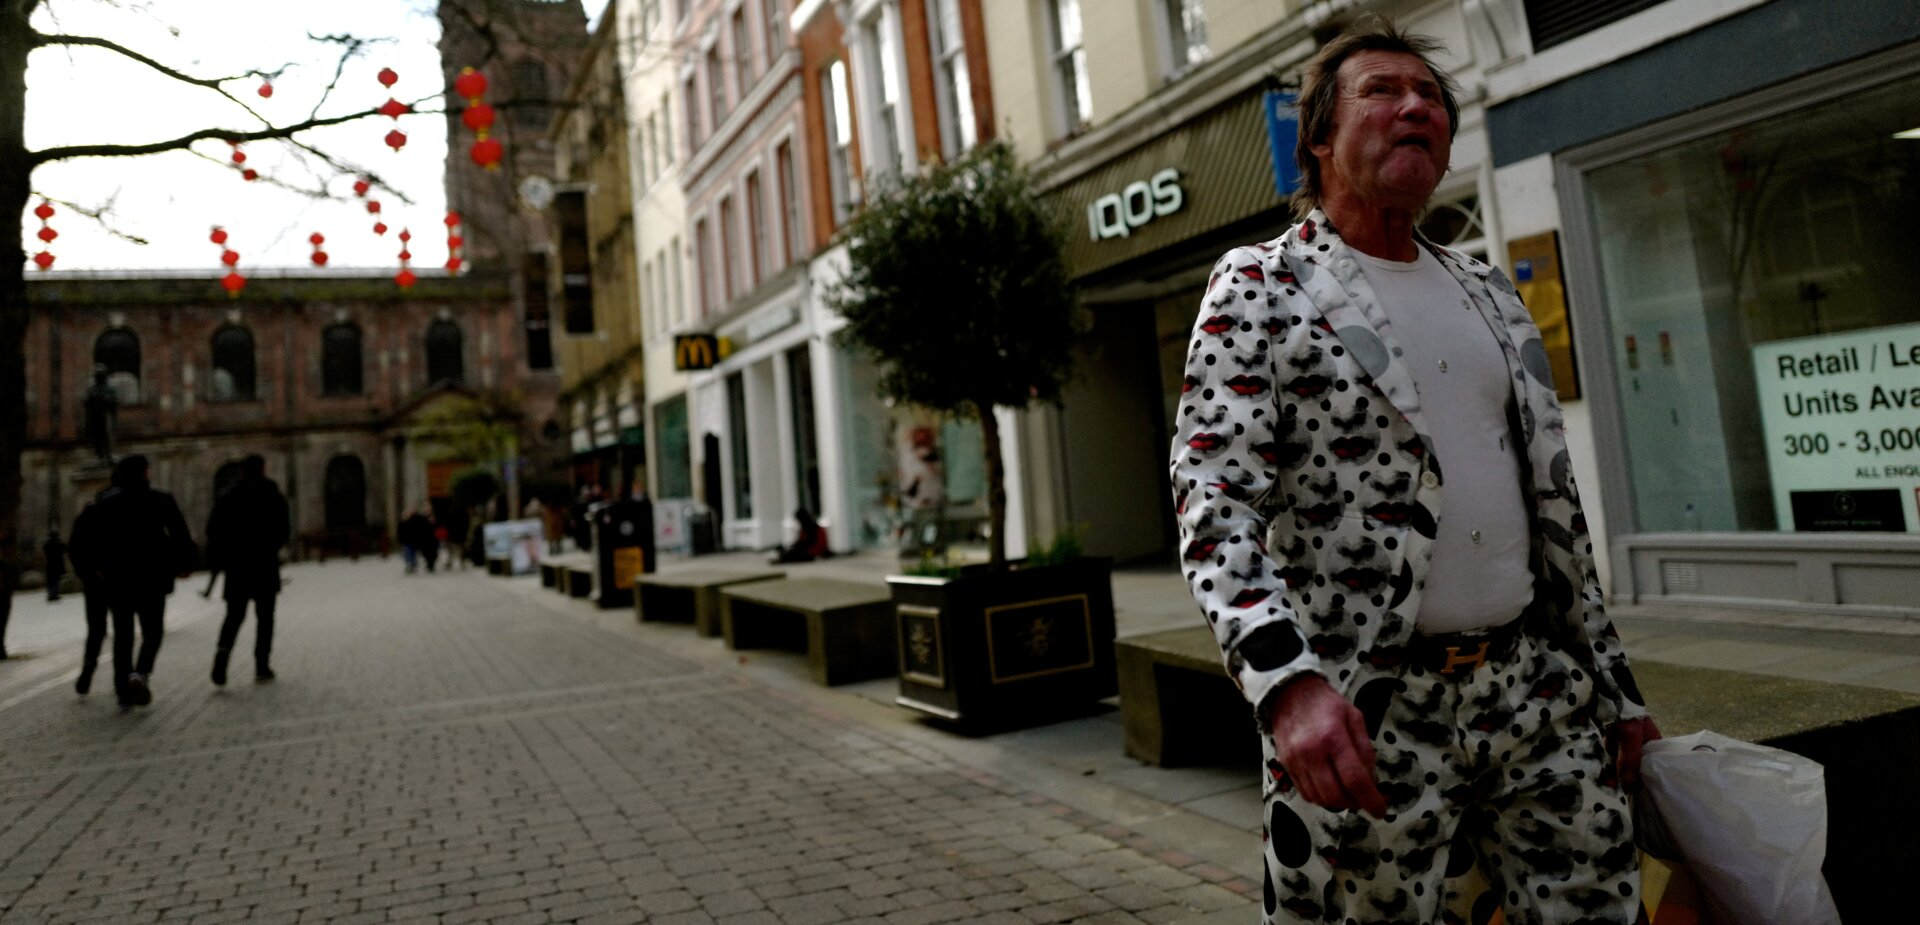 Man in St Anns Square